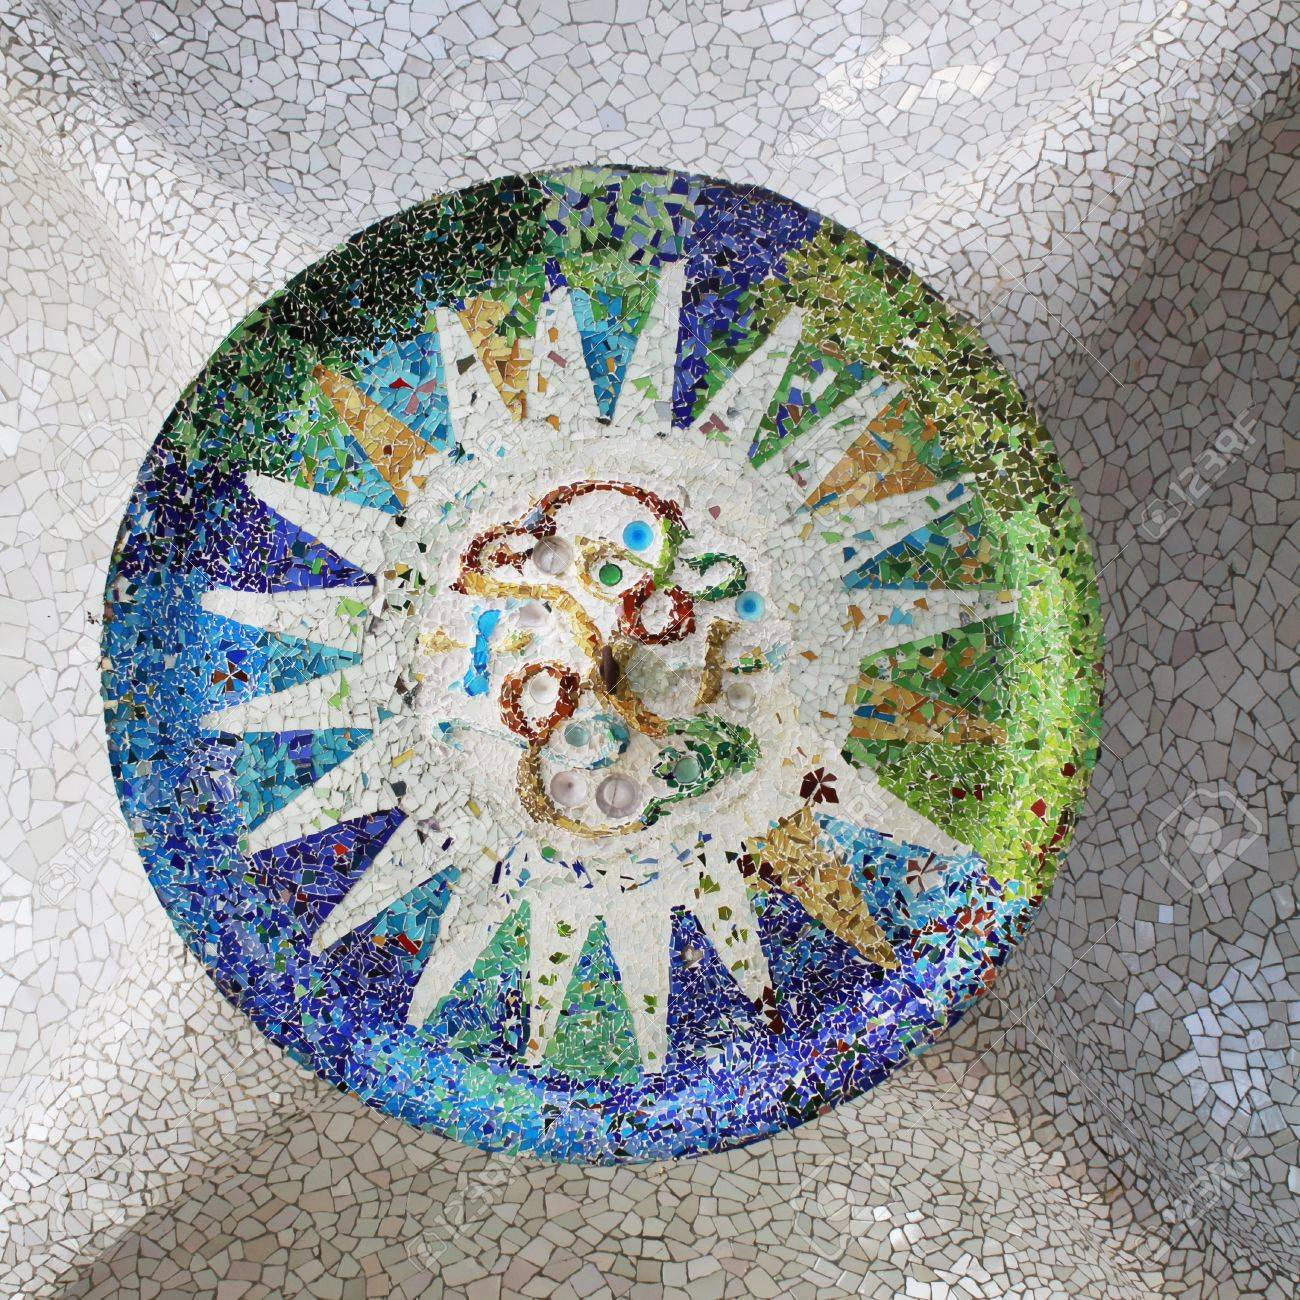 Detail of Antonio Gaudi s mosaic style at Parc Guell in Barcelona Stock Photo - 13033838